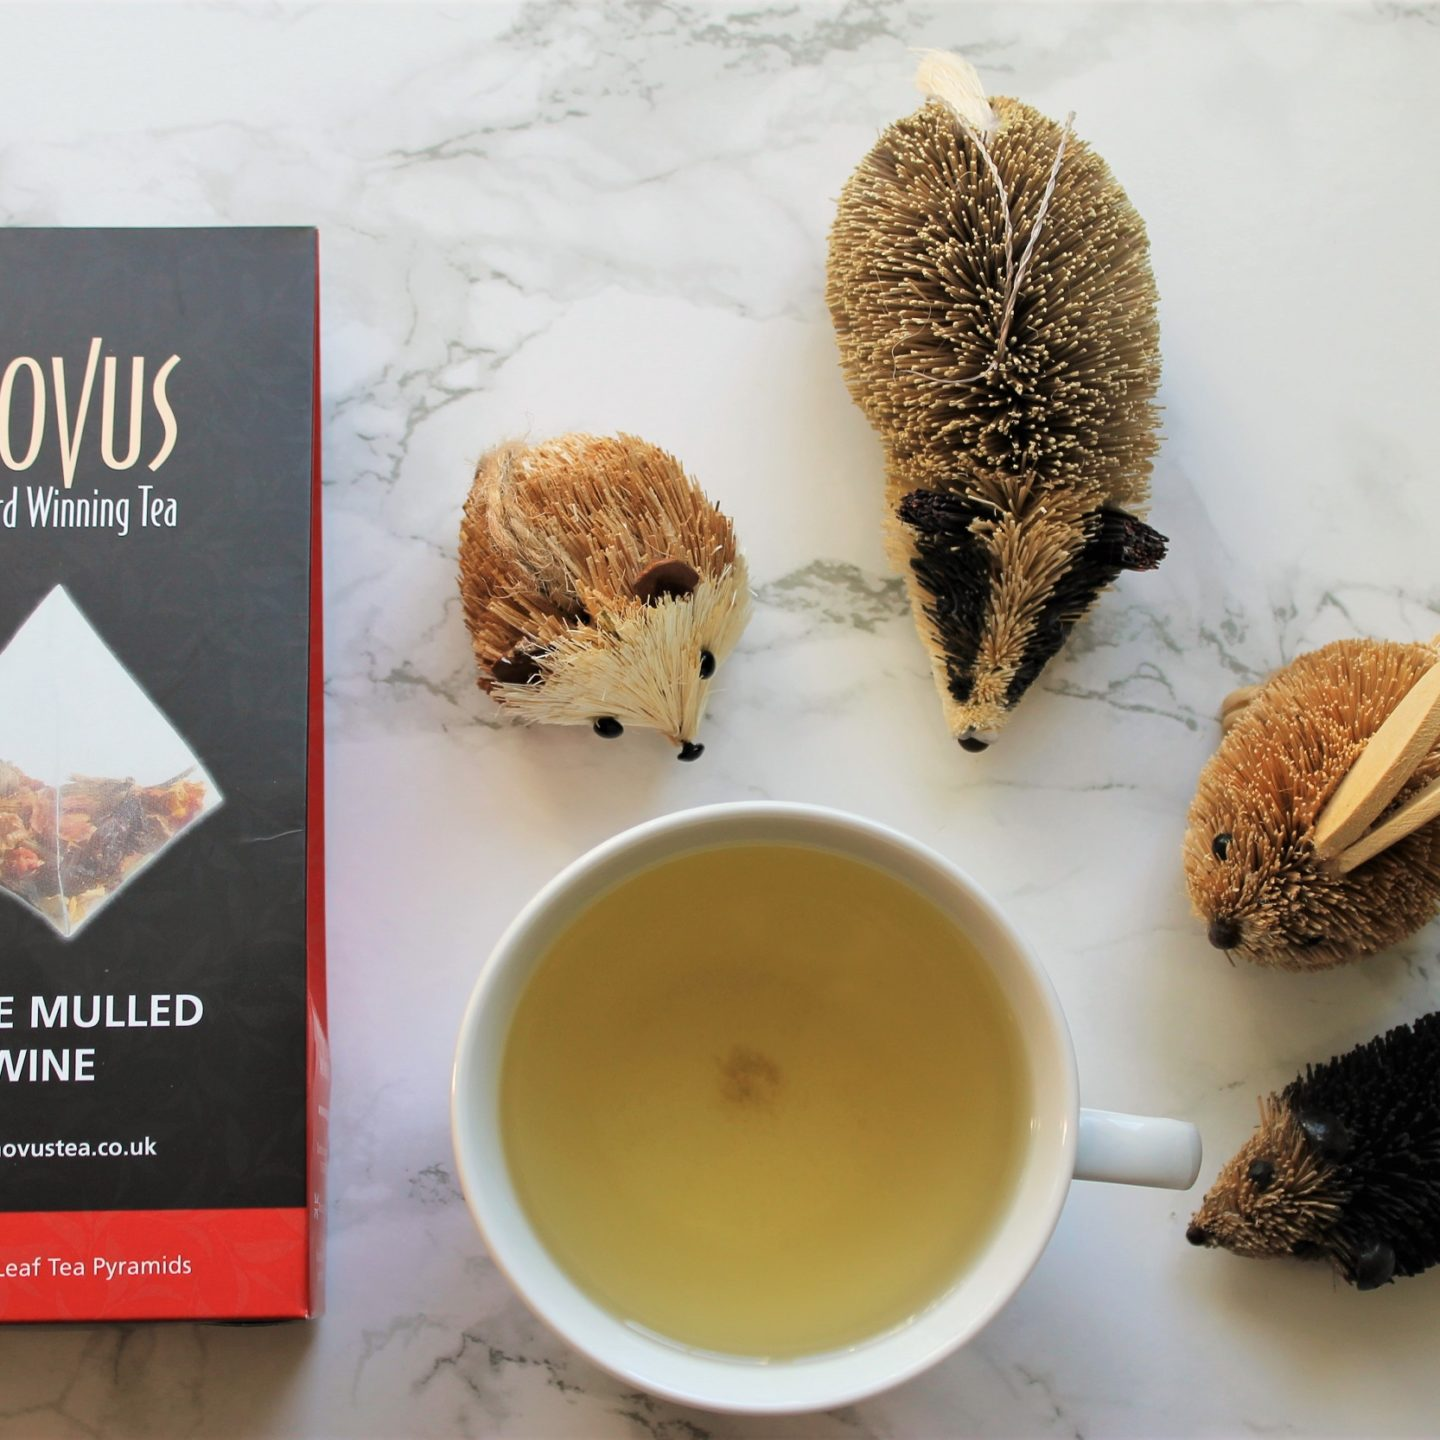 Novus White Mulled Wine Tea Review